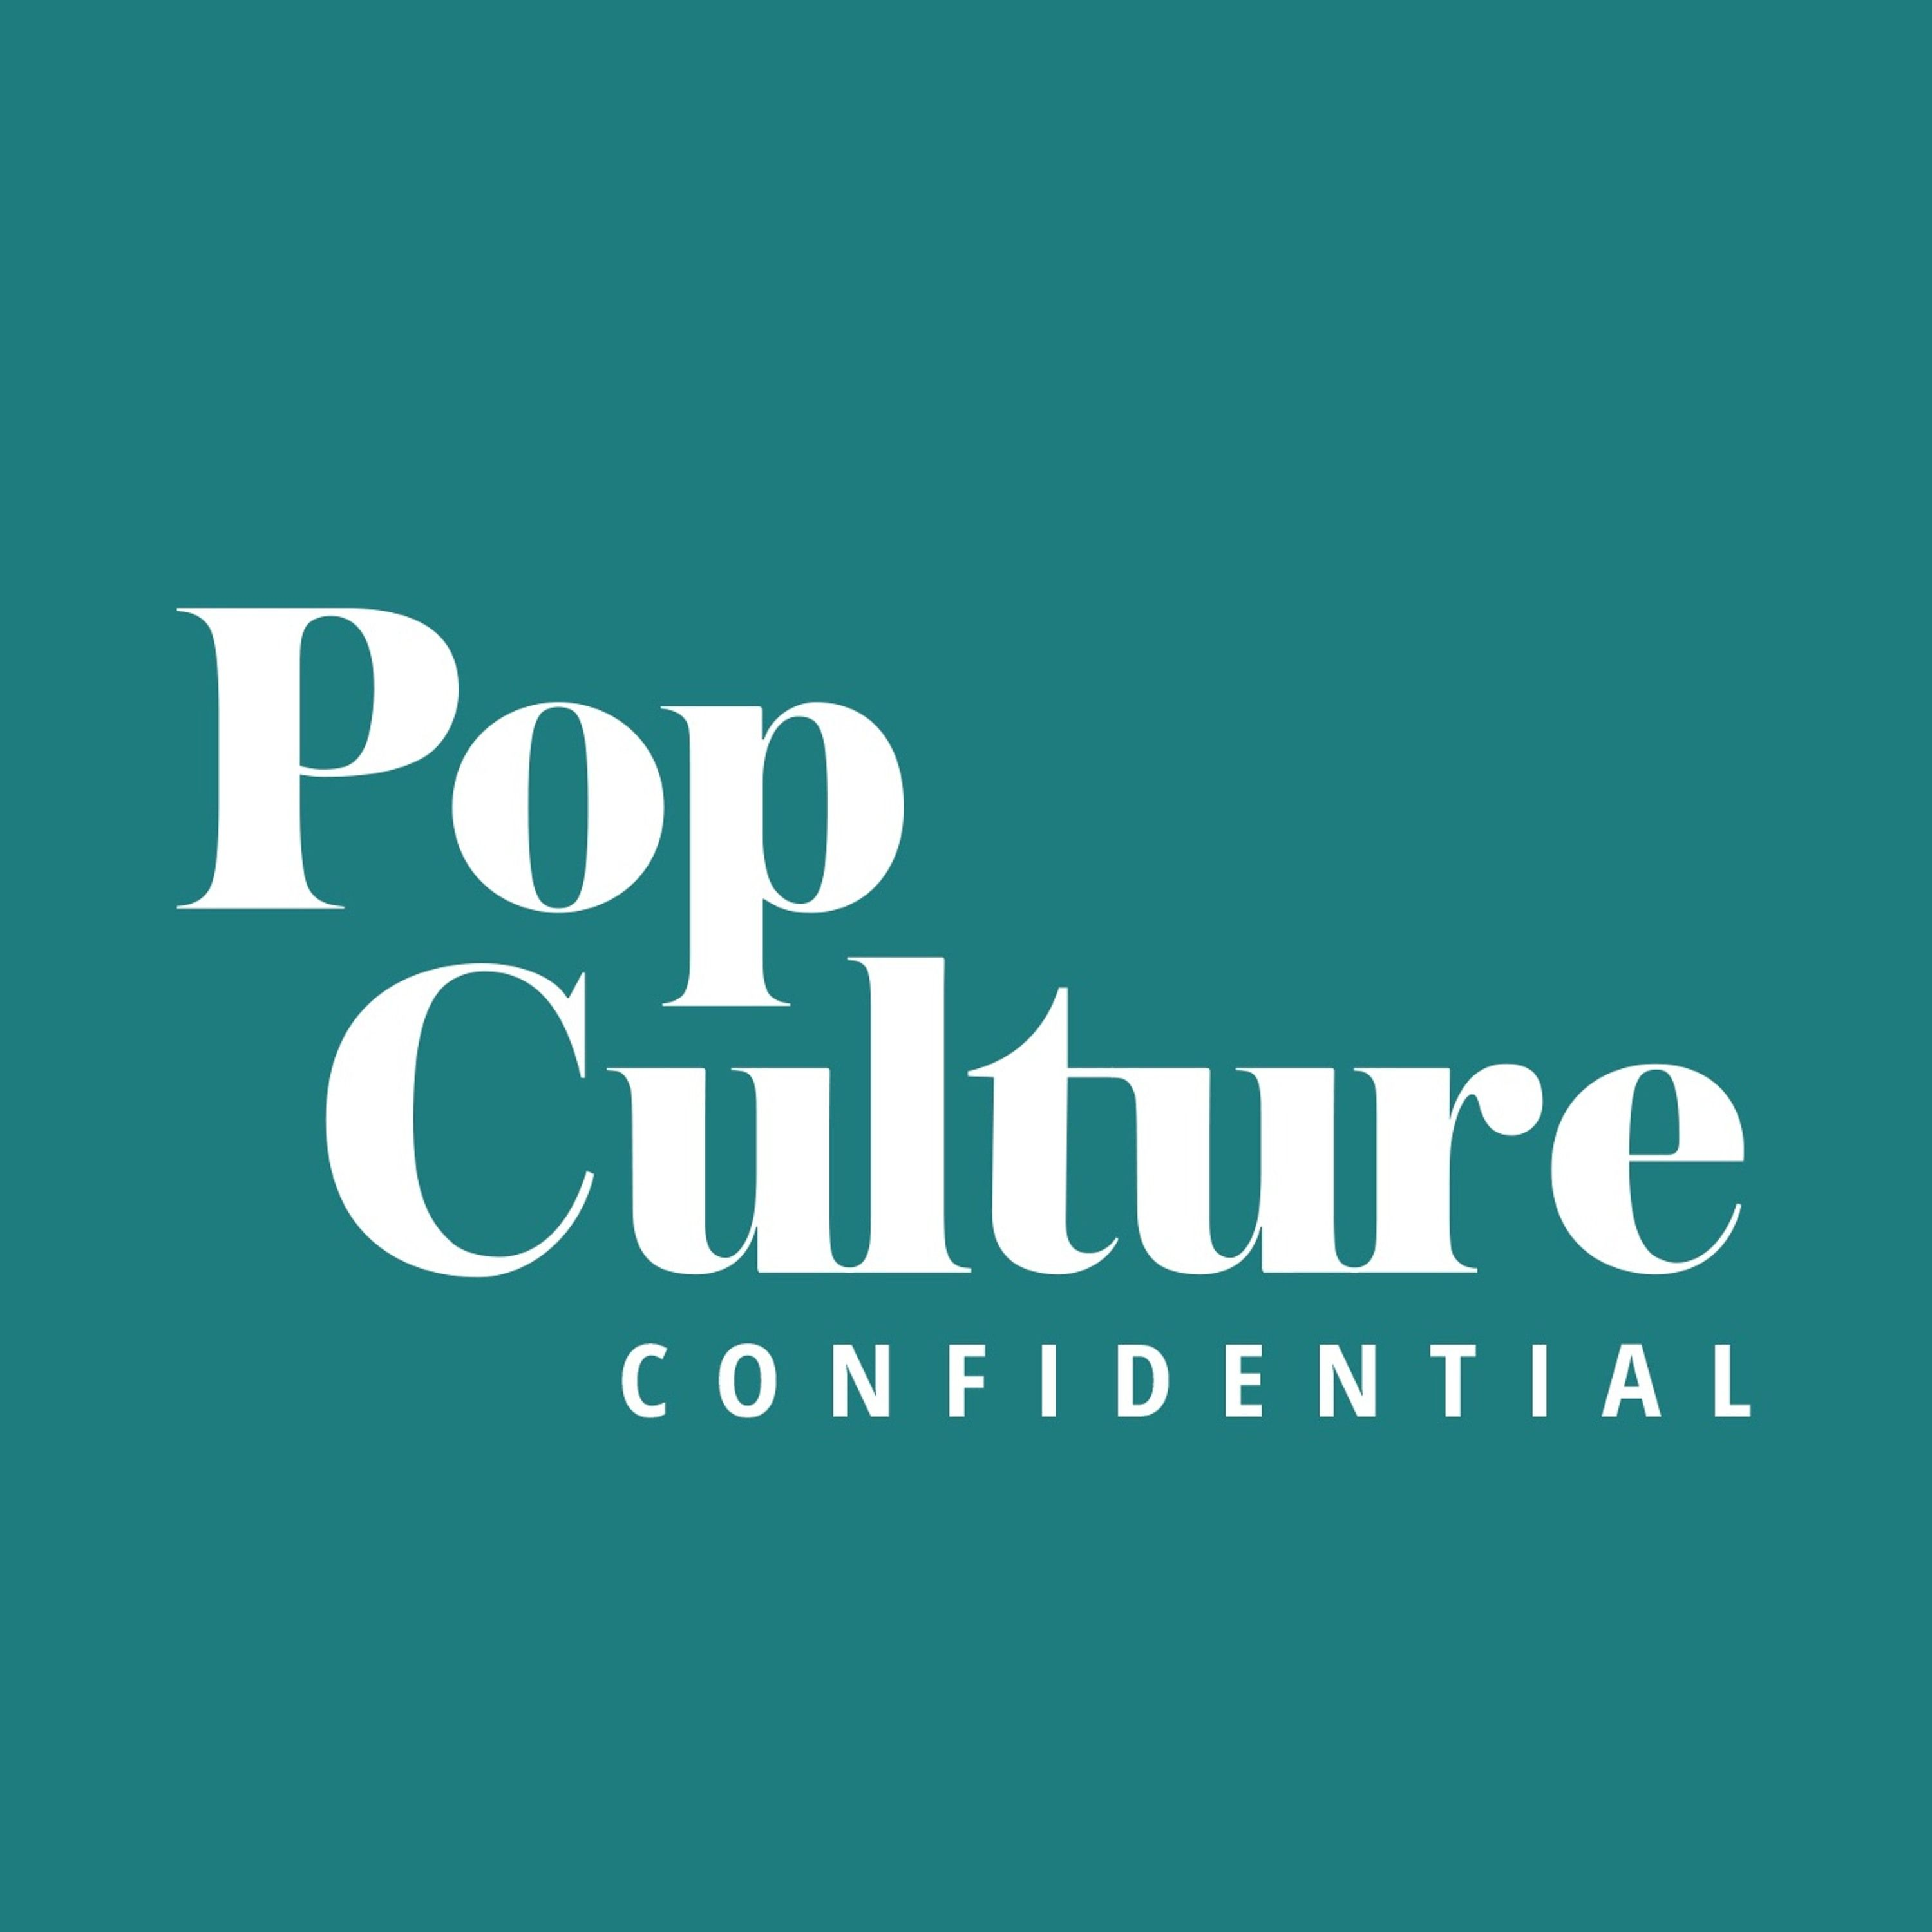 Pop Culture Confidential